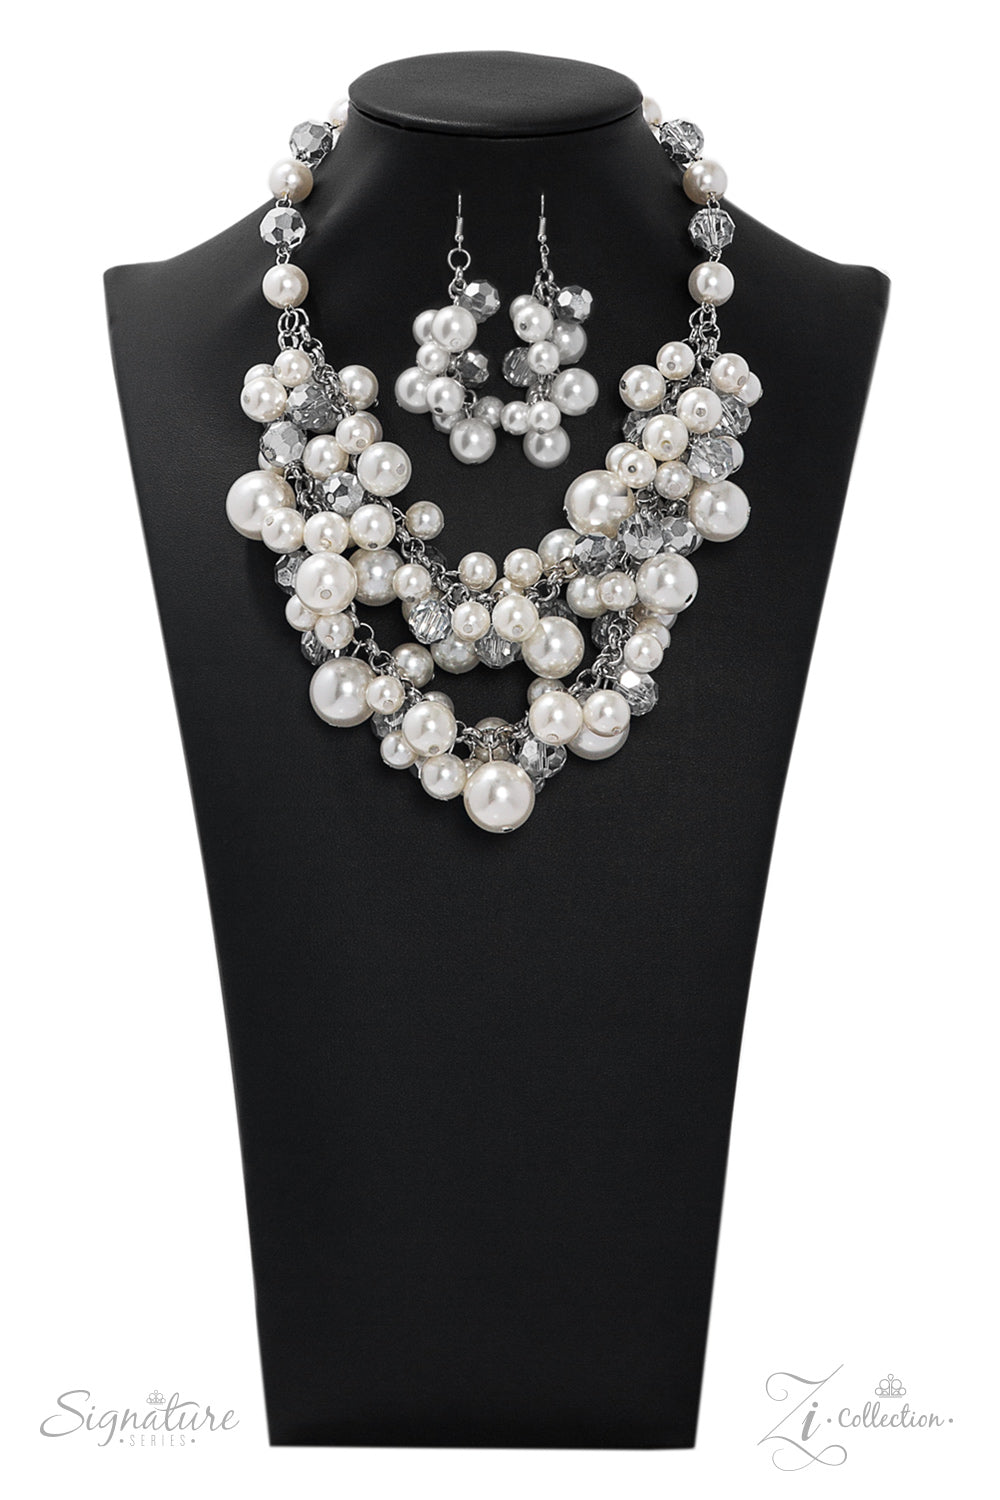 The Lauren - Silver with Layers of Pearls and Crystals Necklace - 2019 Zi Collection